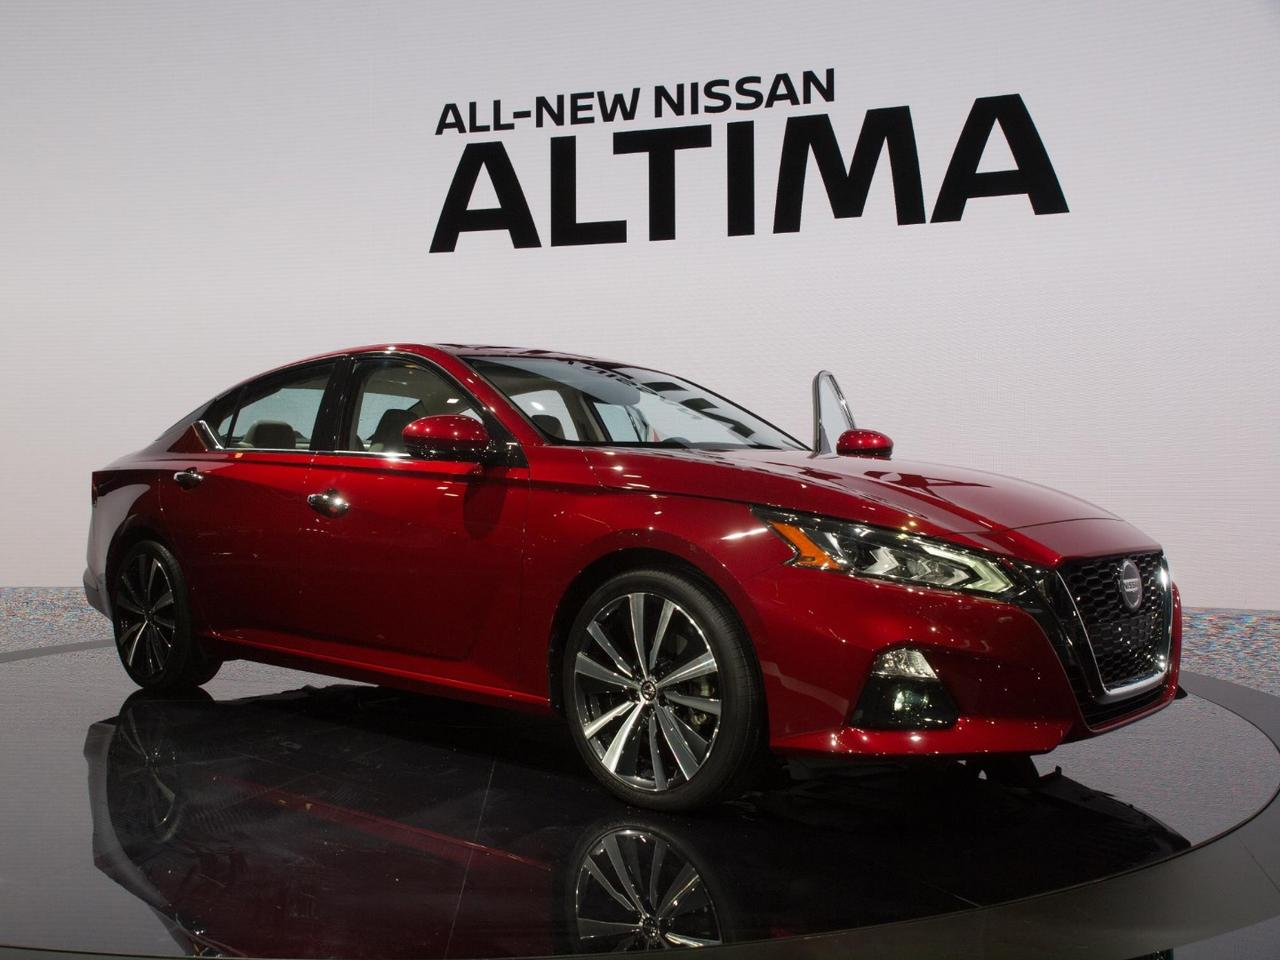 Nissan introduces the sixth-generation Altima